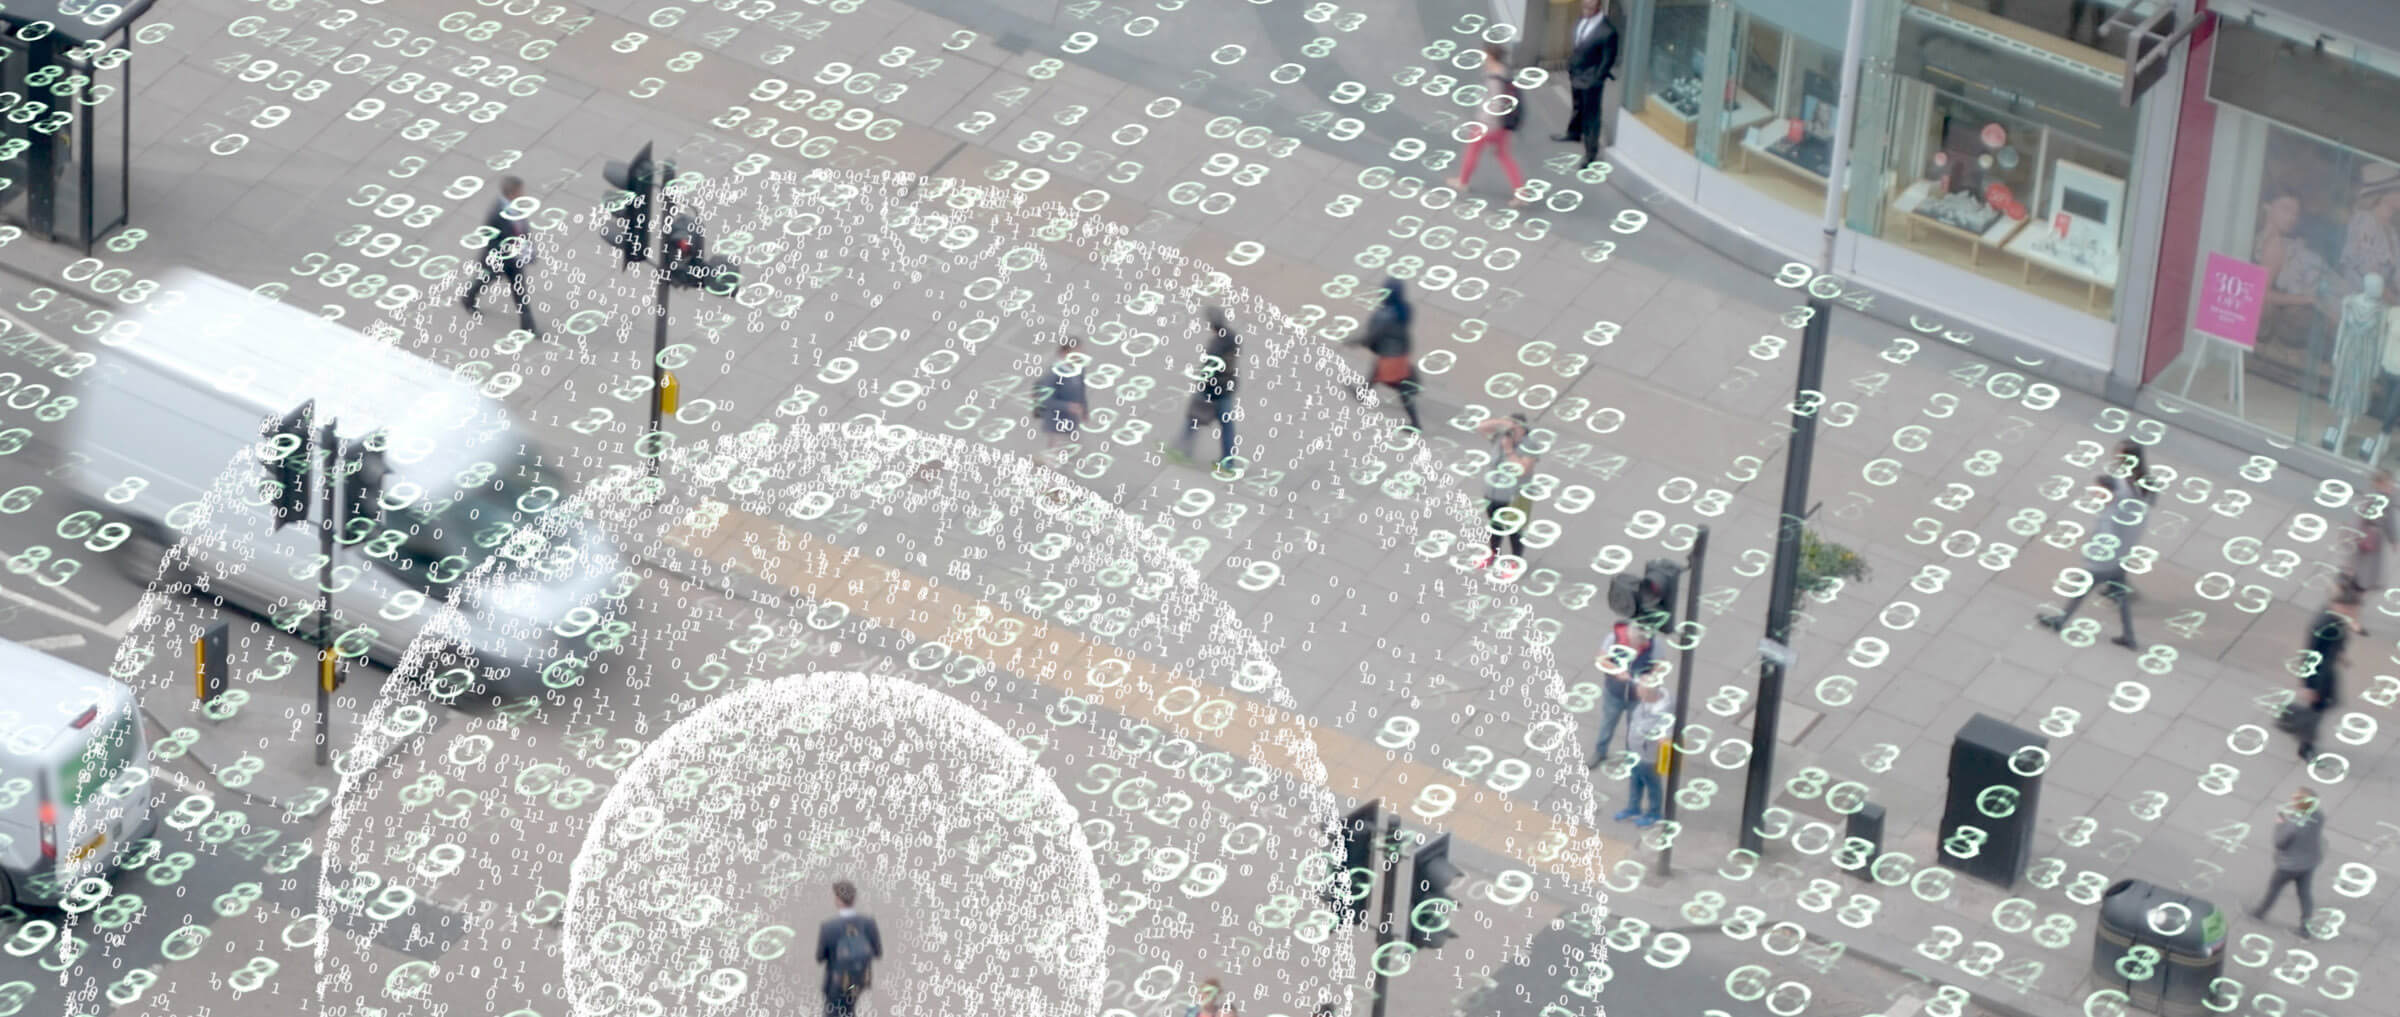 Digital code overlaid onto city street image